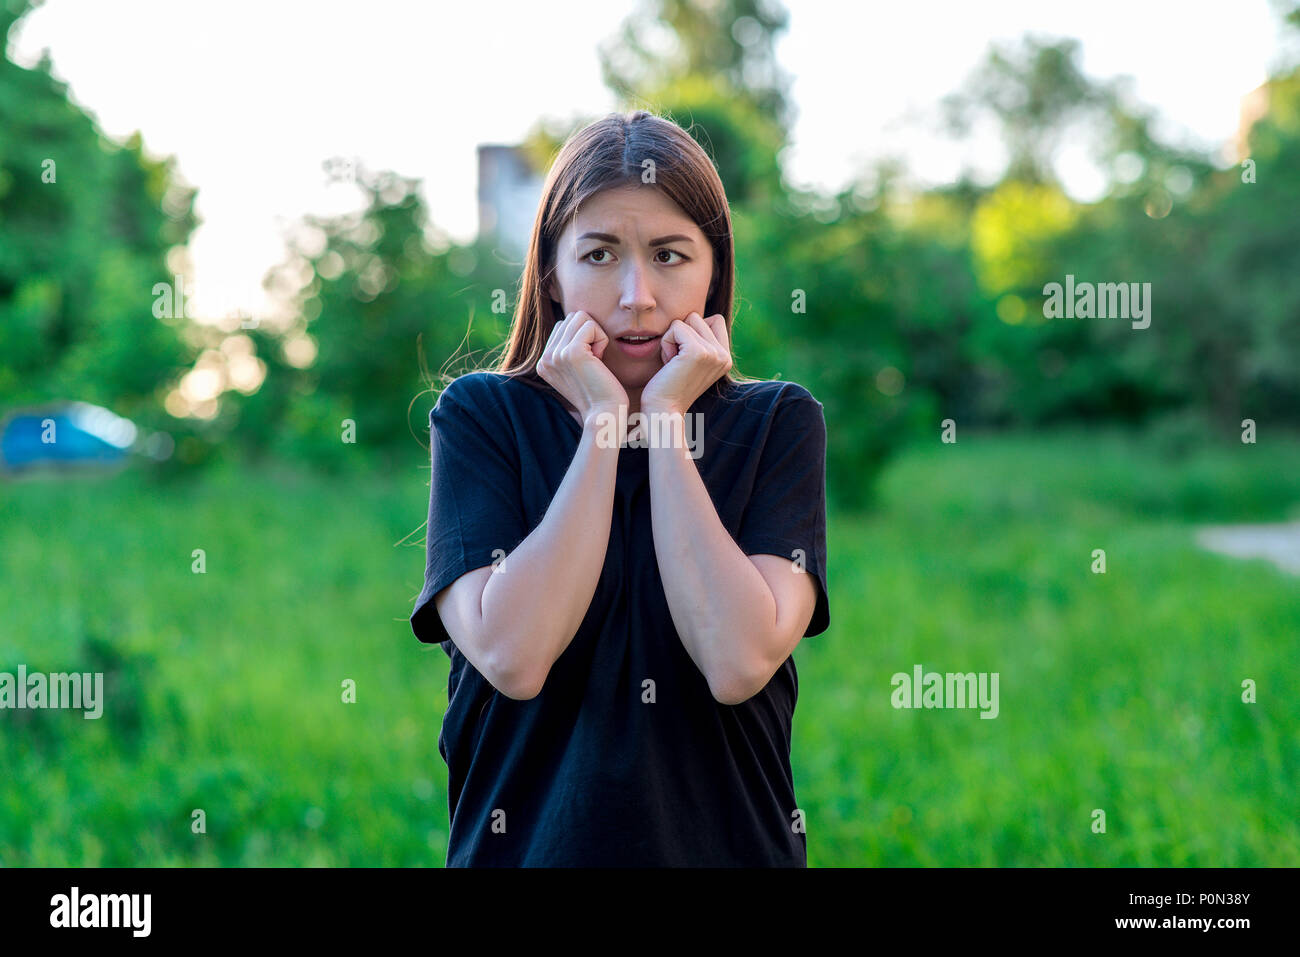 Beautiful brunette girl in summer in a park on nature. Emotional expression of fear. Gesture with hands shows emotional fear. Surprised face frightened eyes. - Stock Image